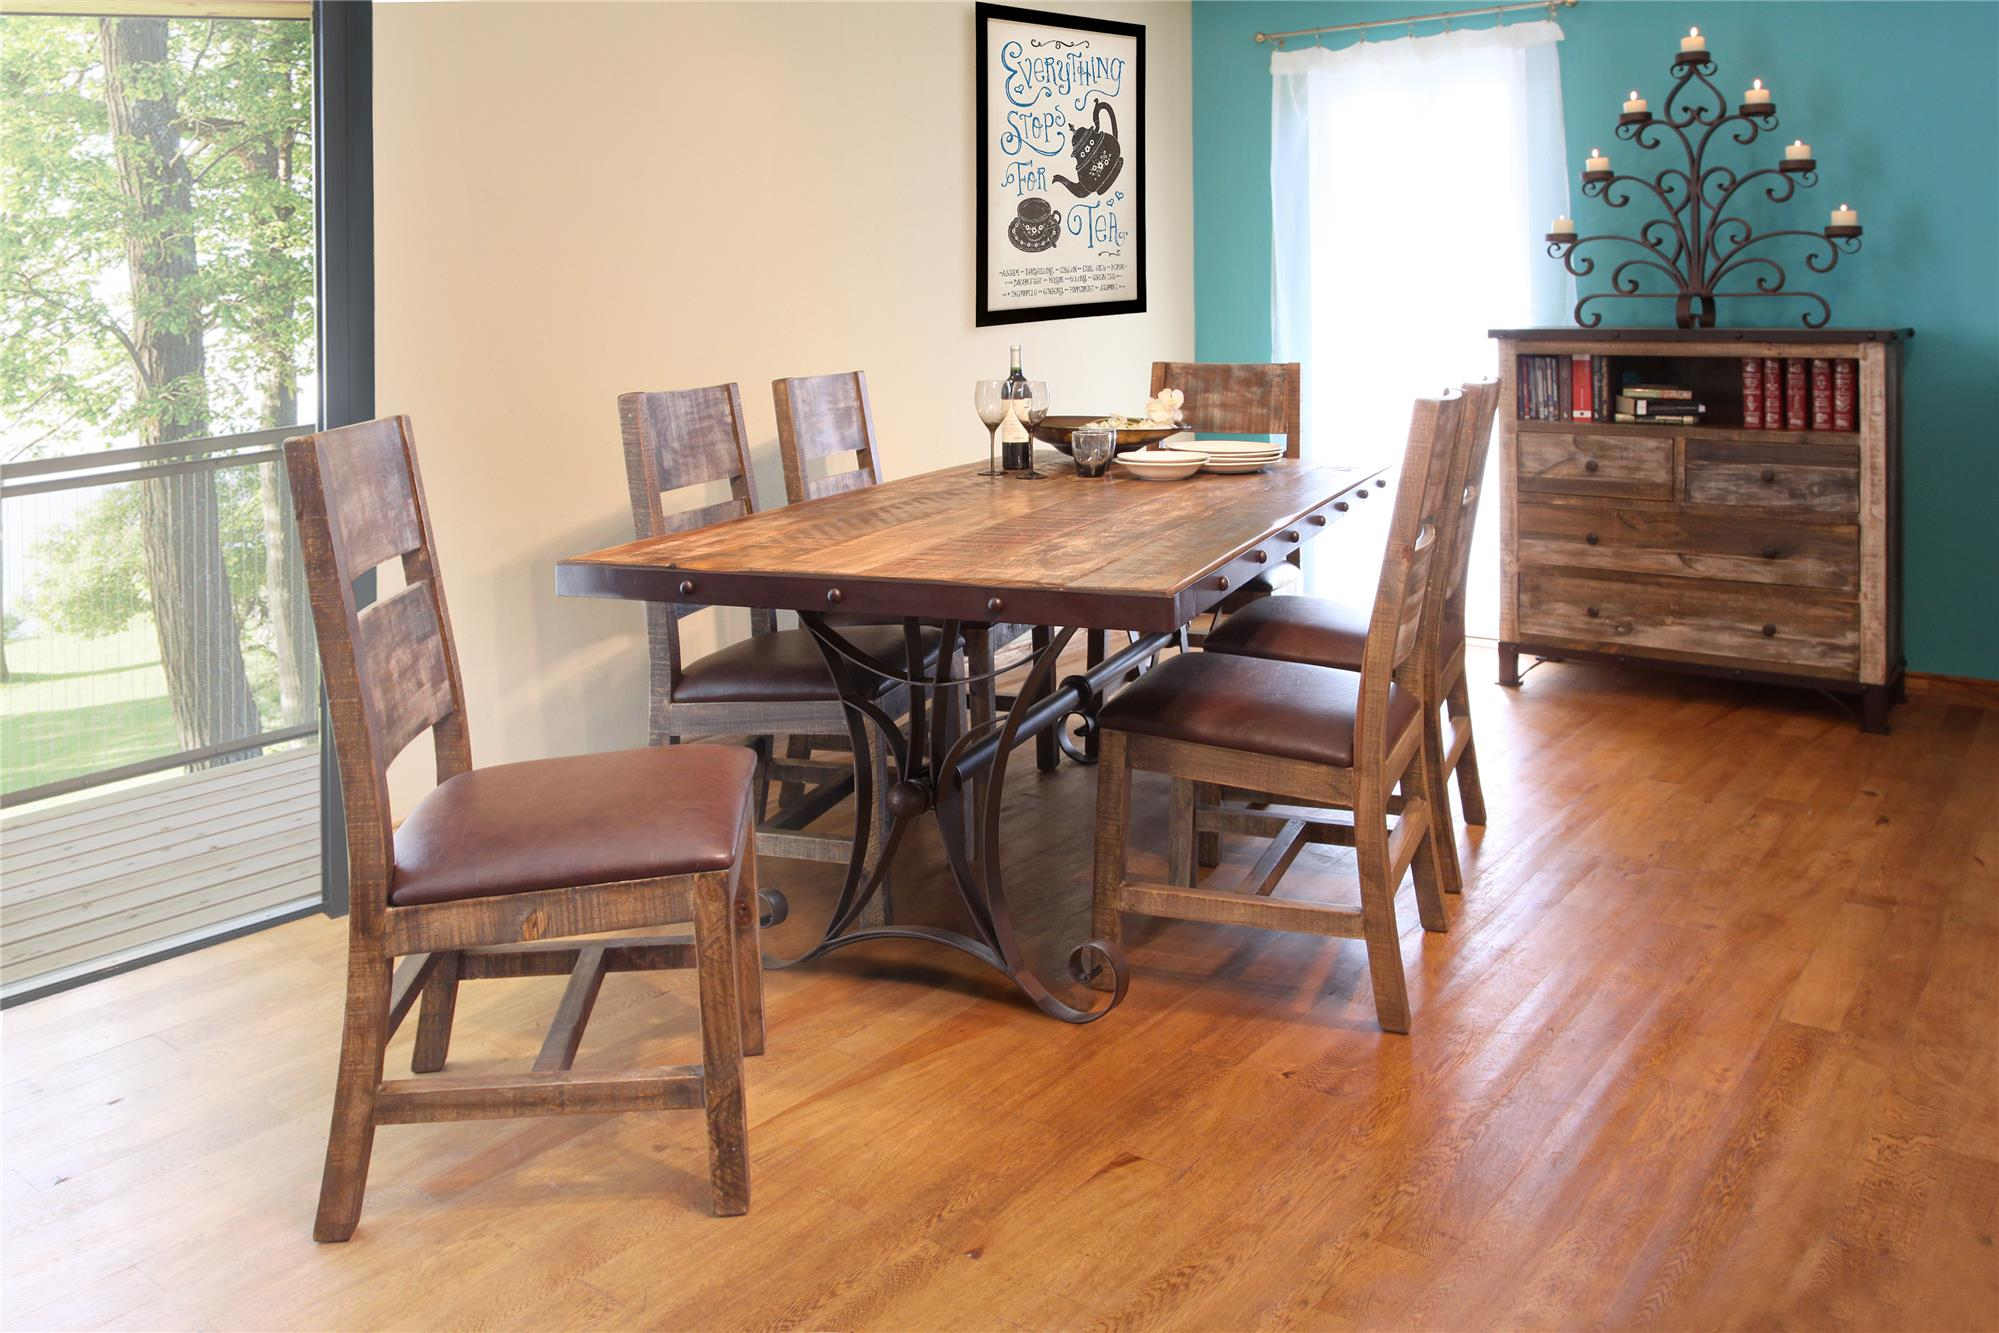 al s chairs and tables ergonomic chair reasons dining rooms gary furniture of picture rocks